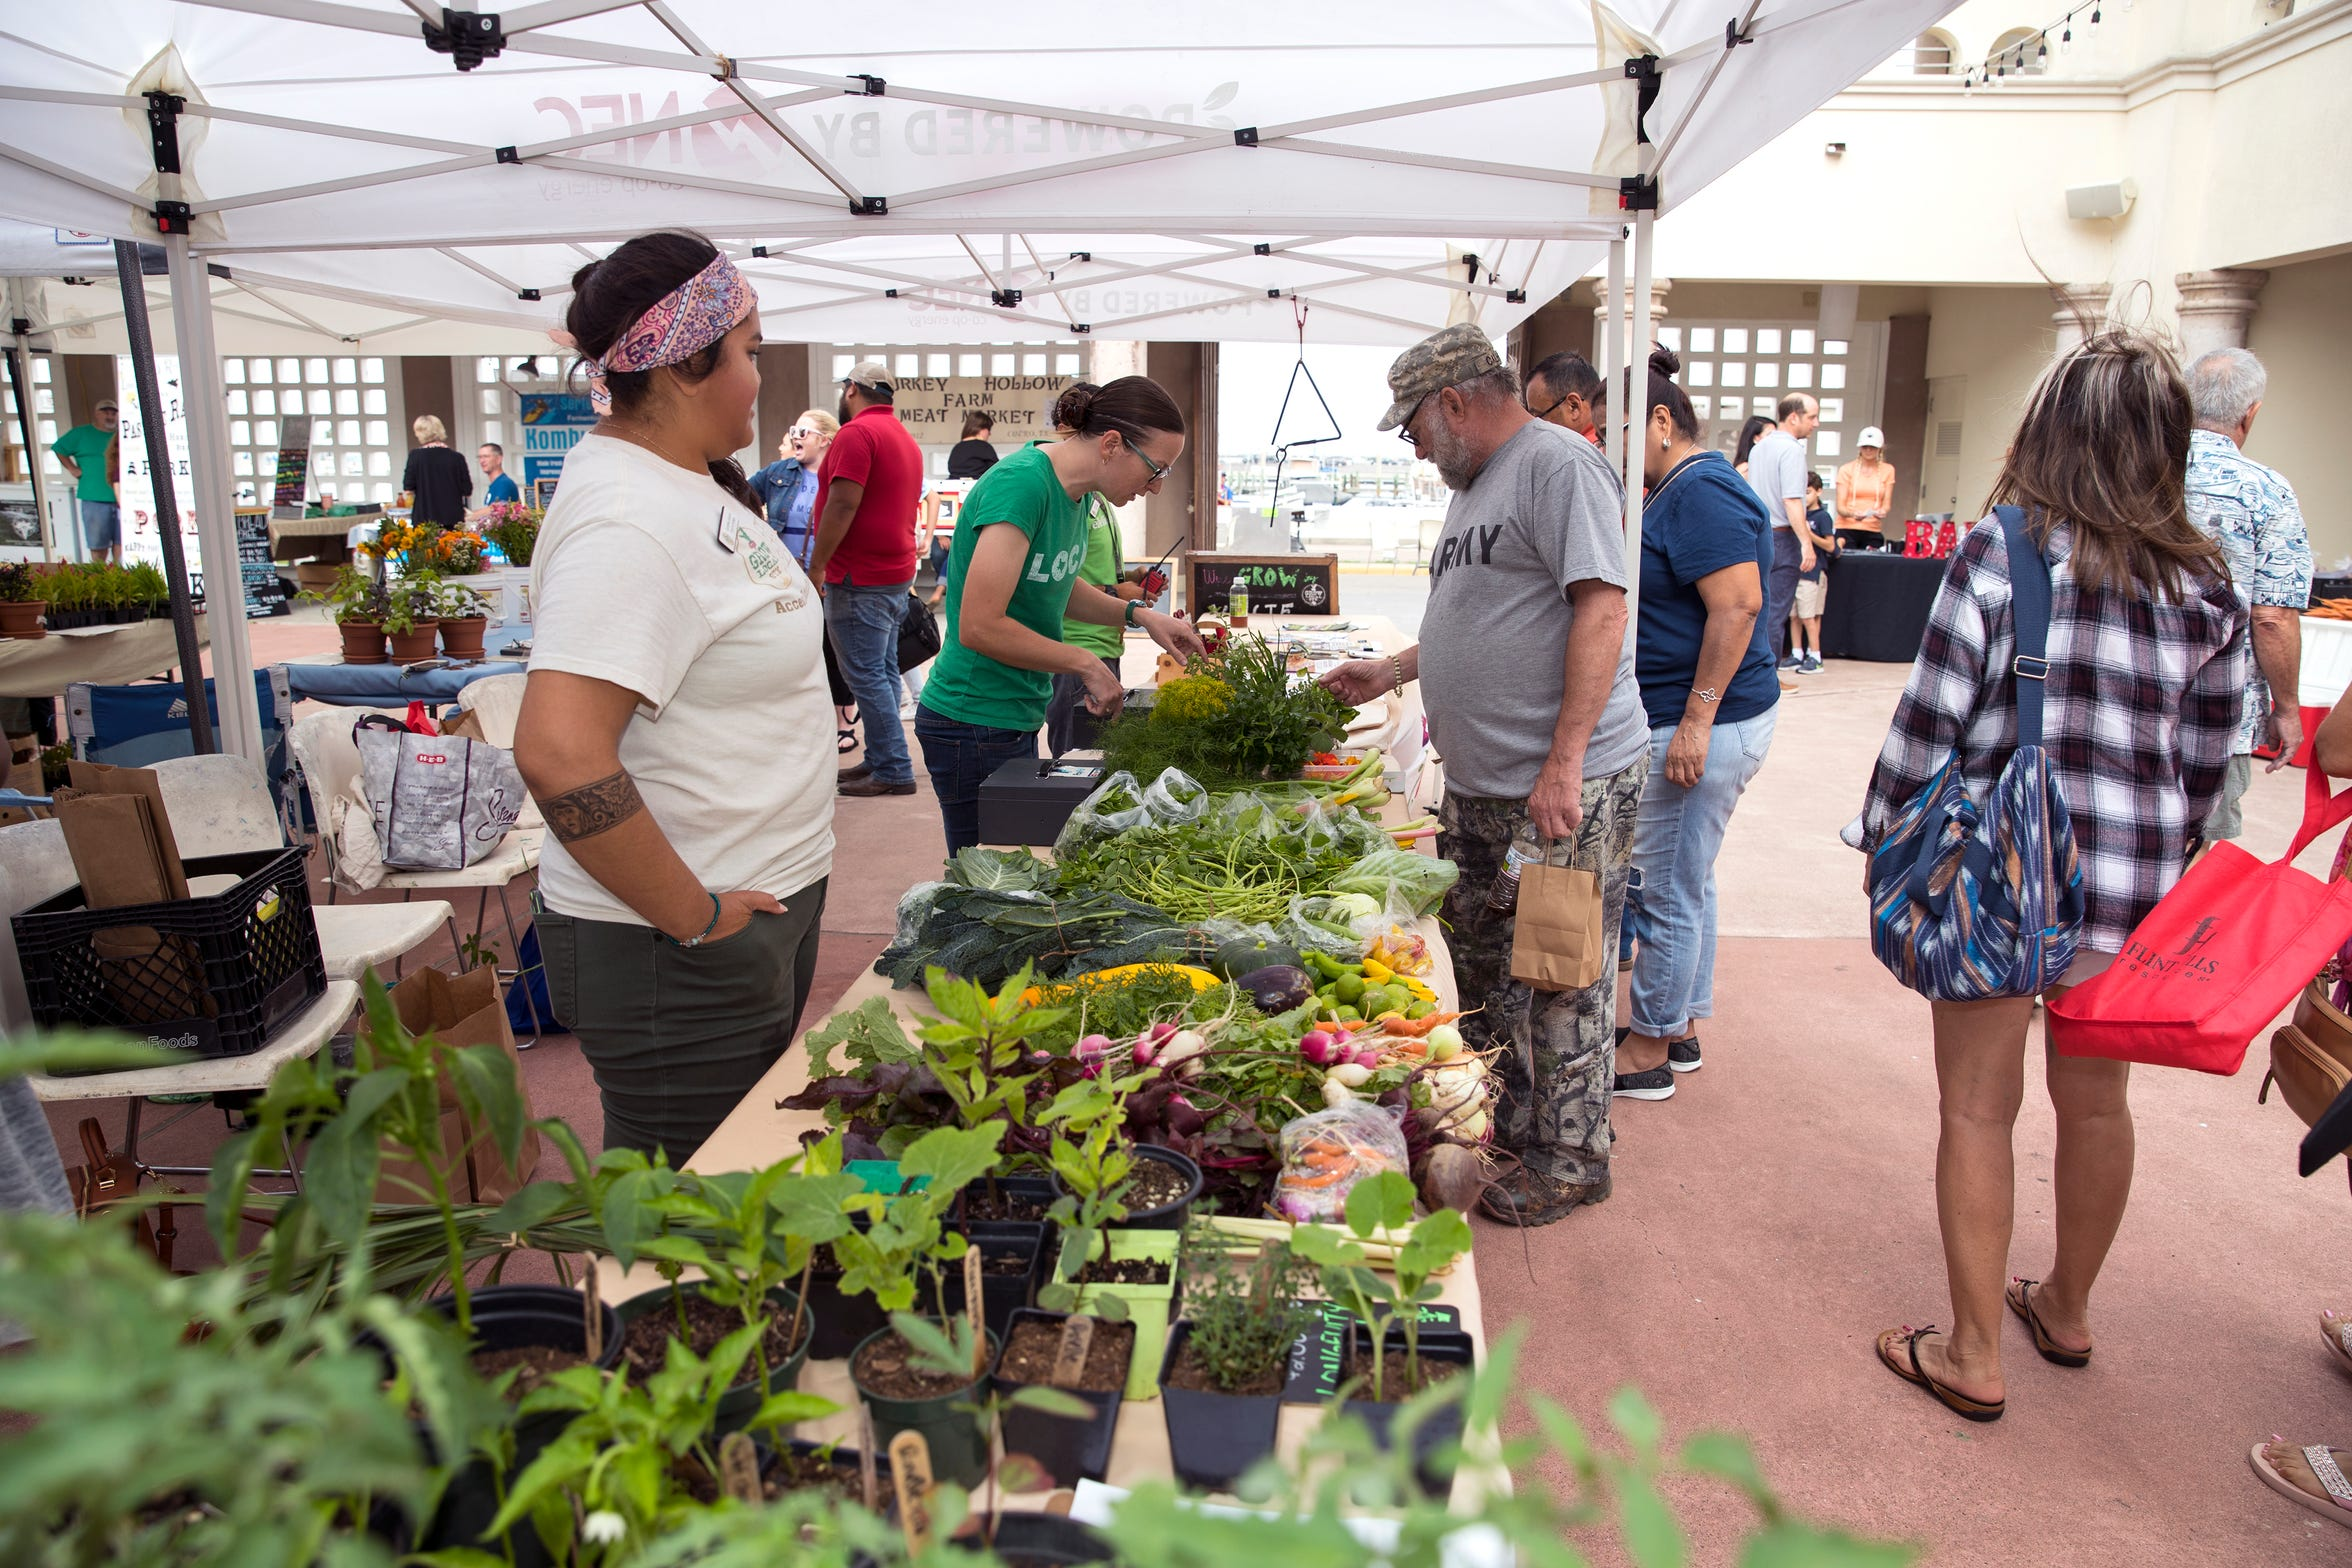 Cynthia Garcia, from left, and Michelle Kish, help customers including Douglas Calhoun shopping at The Learning Garden at Tom Graham Park booth at the Corpus Christi Downtown Farmers Market on Wednesday, April 24, 2019. It offers a variety of seasonal produce, grass fed beef, pastured raised poultry, prepared goods such as roasted coffee, sweets and preserves and baked goods. It is open weekly on Wednesday from 5 to 8 pm at 100 N. Shoreline Blvd.